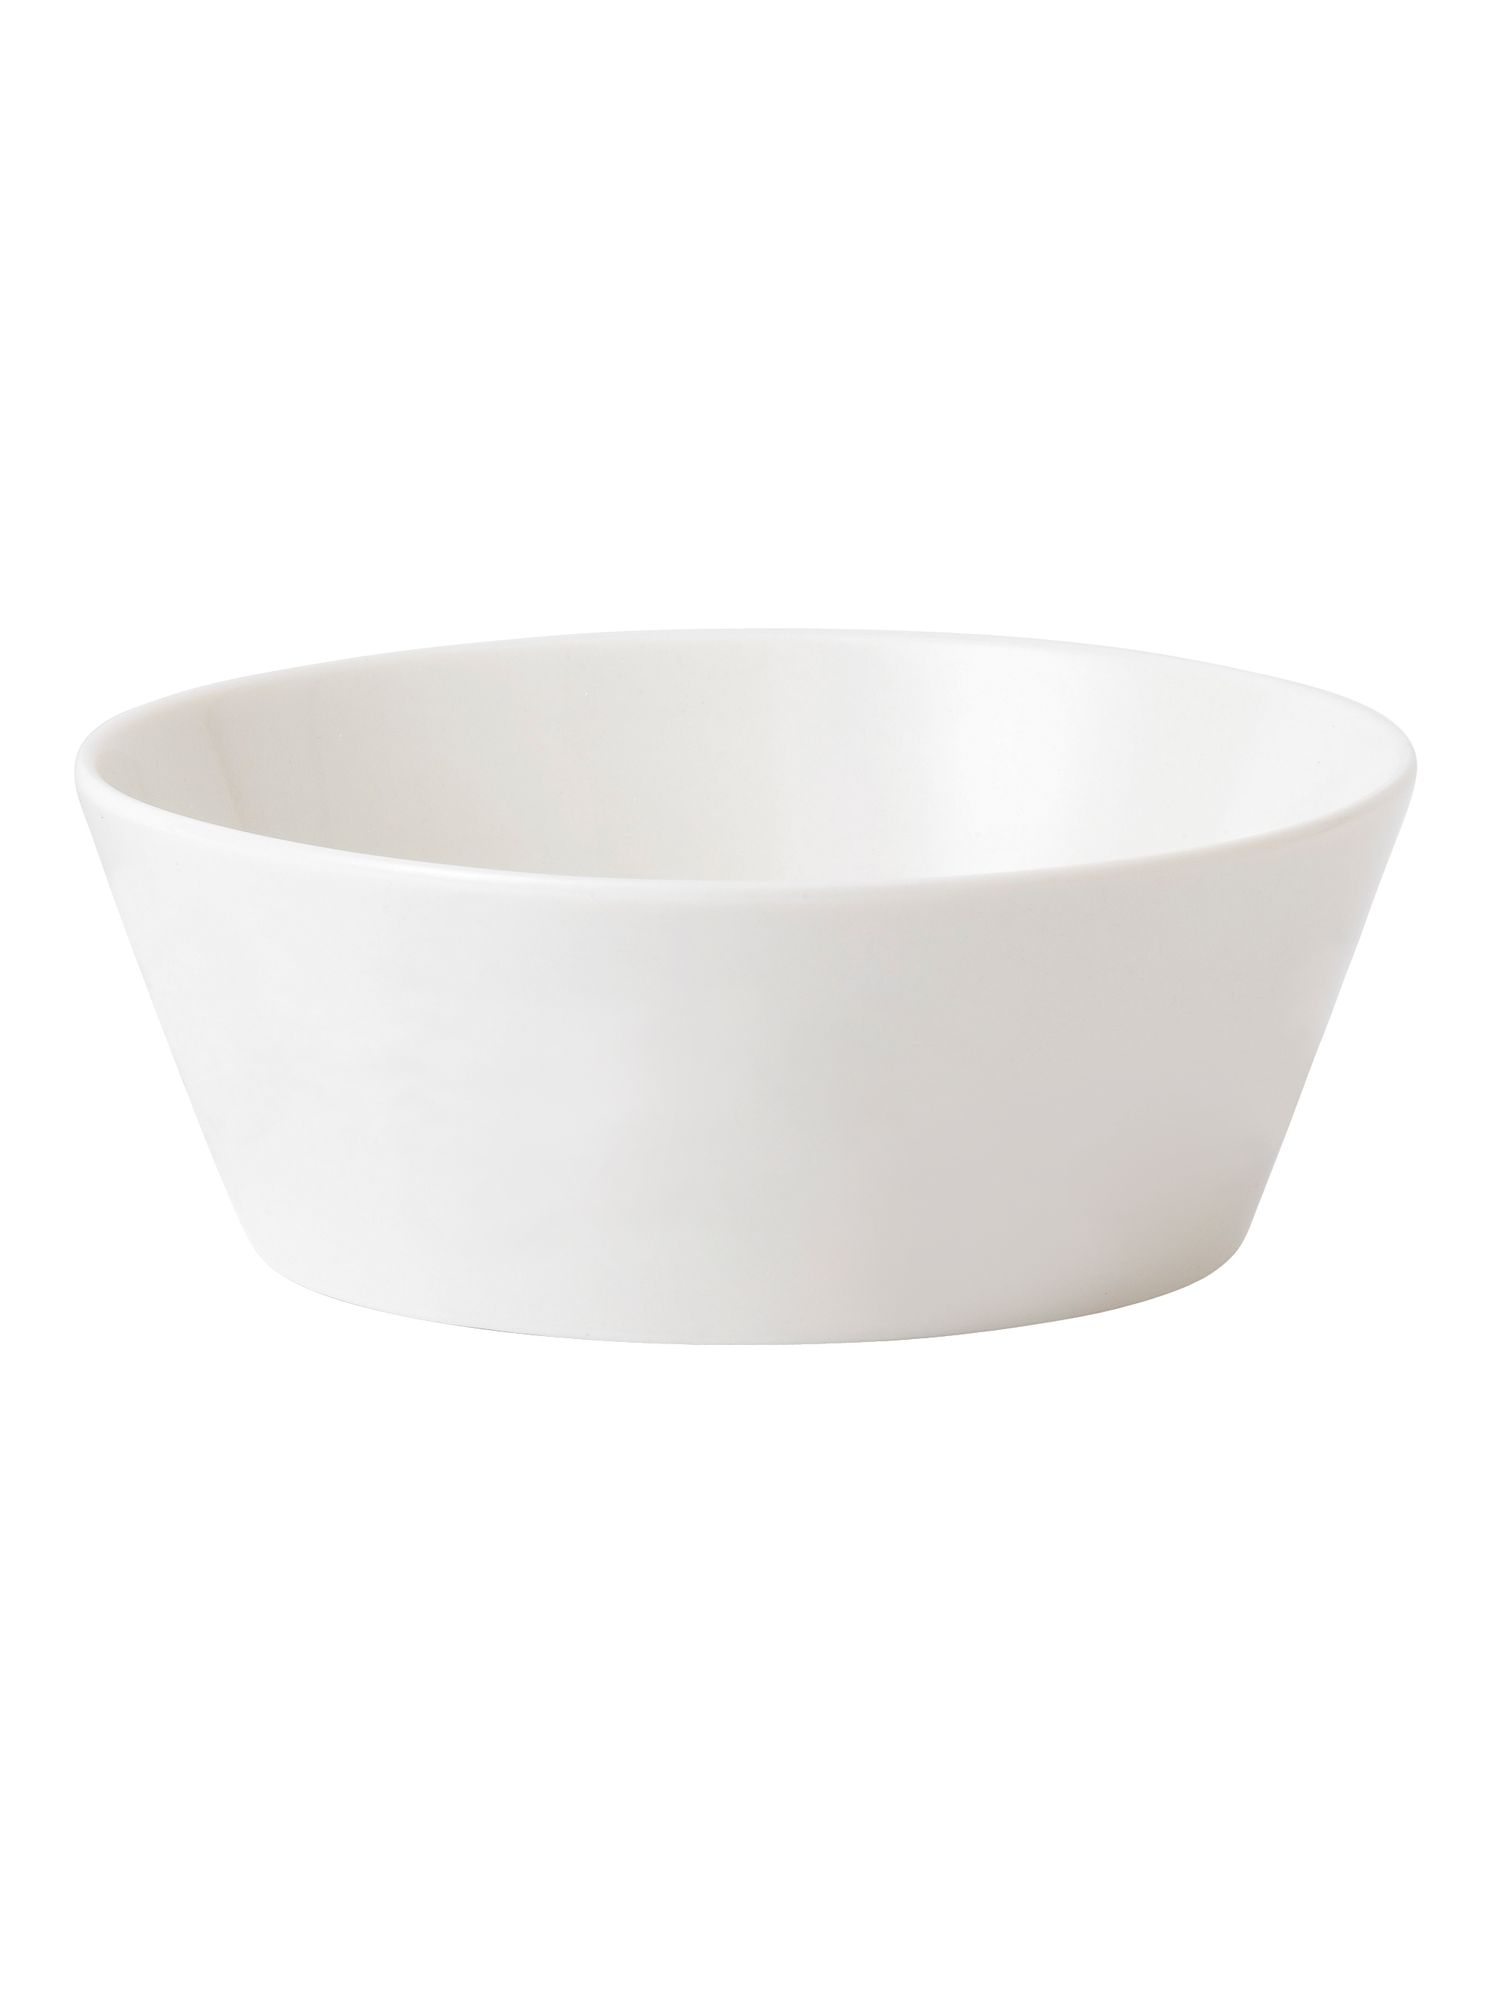 Fable white 25cm serving bowl